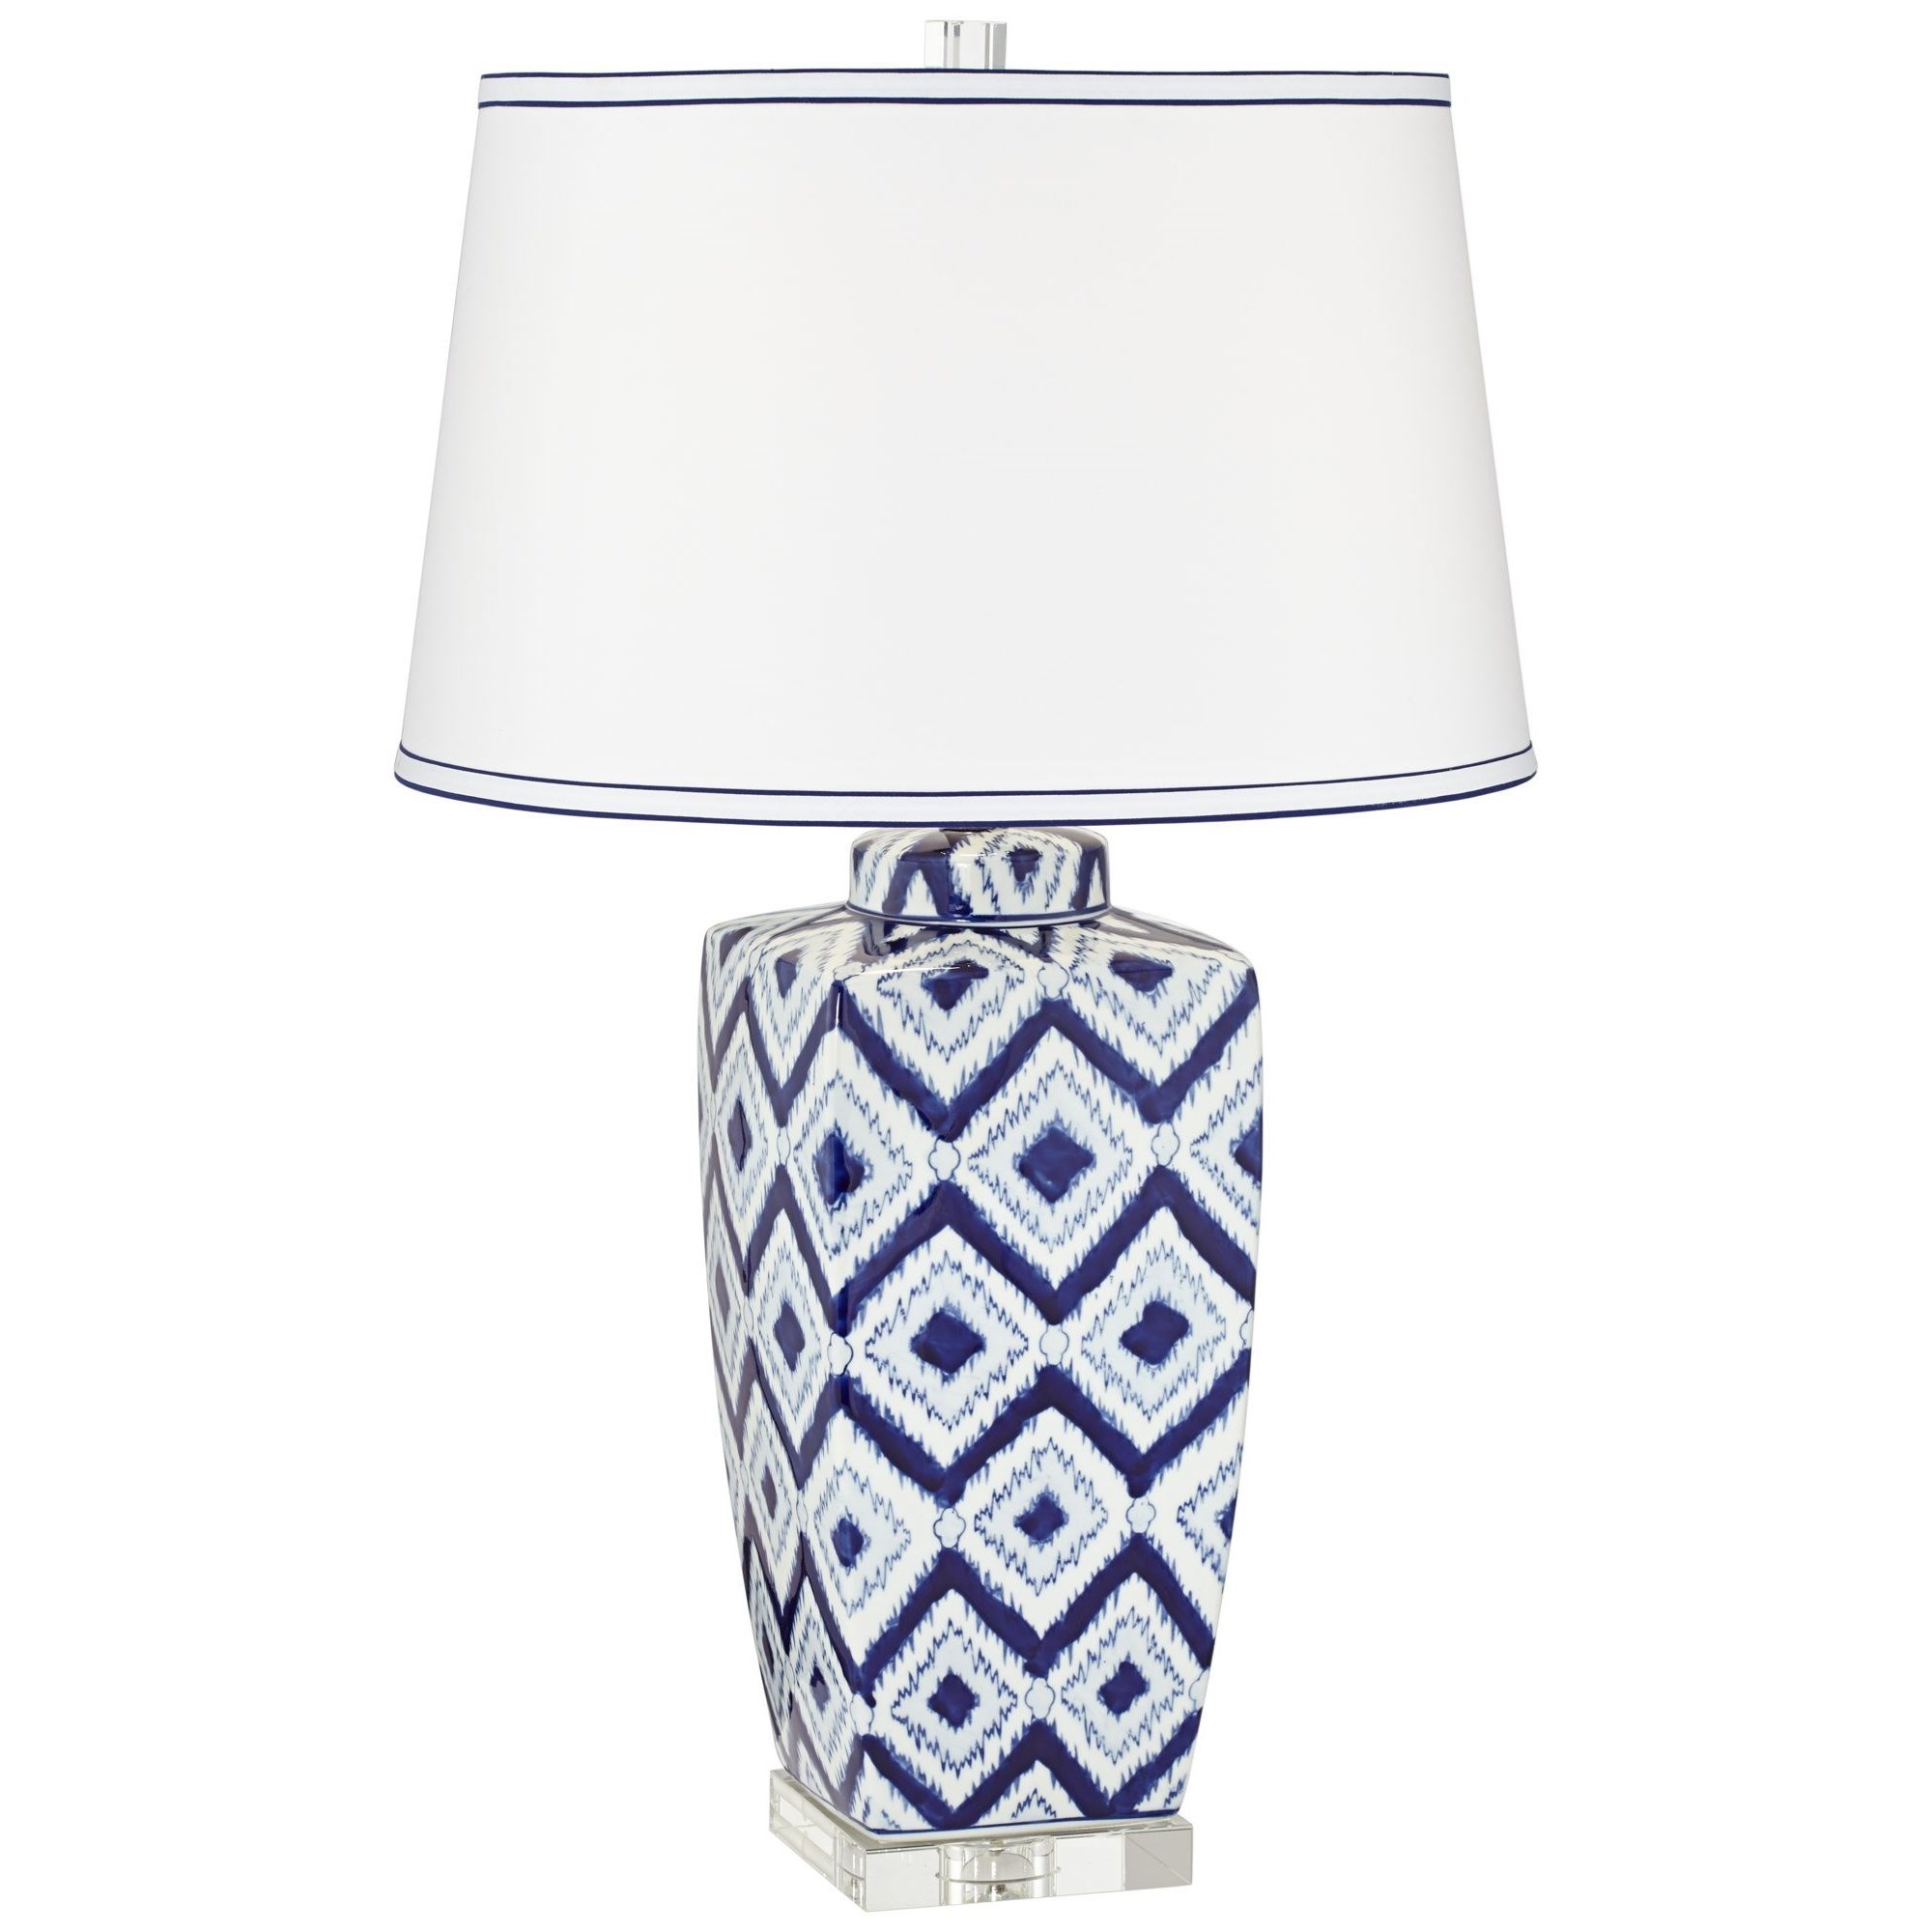 Table Lamps Diamond Pattern Ceramic Lamp at Bennett's Furniture and Mattresses